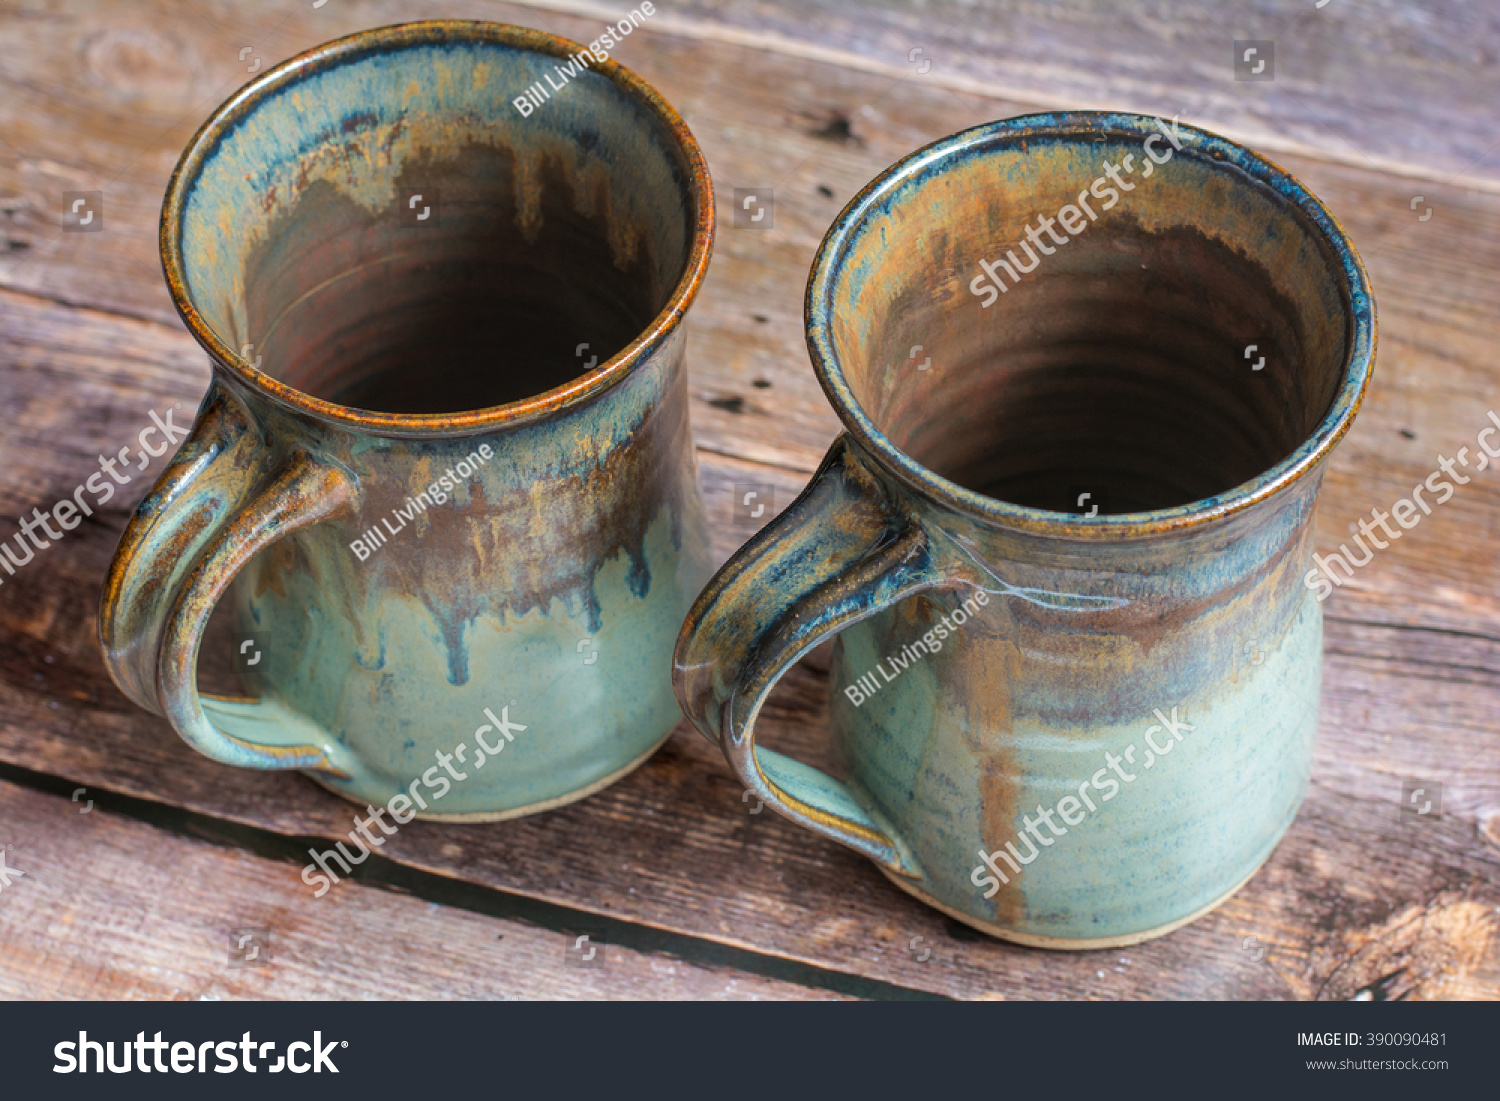 Two Rustic Clay Mugs On Old Stock Photo Edit Now 390090481